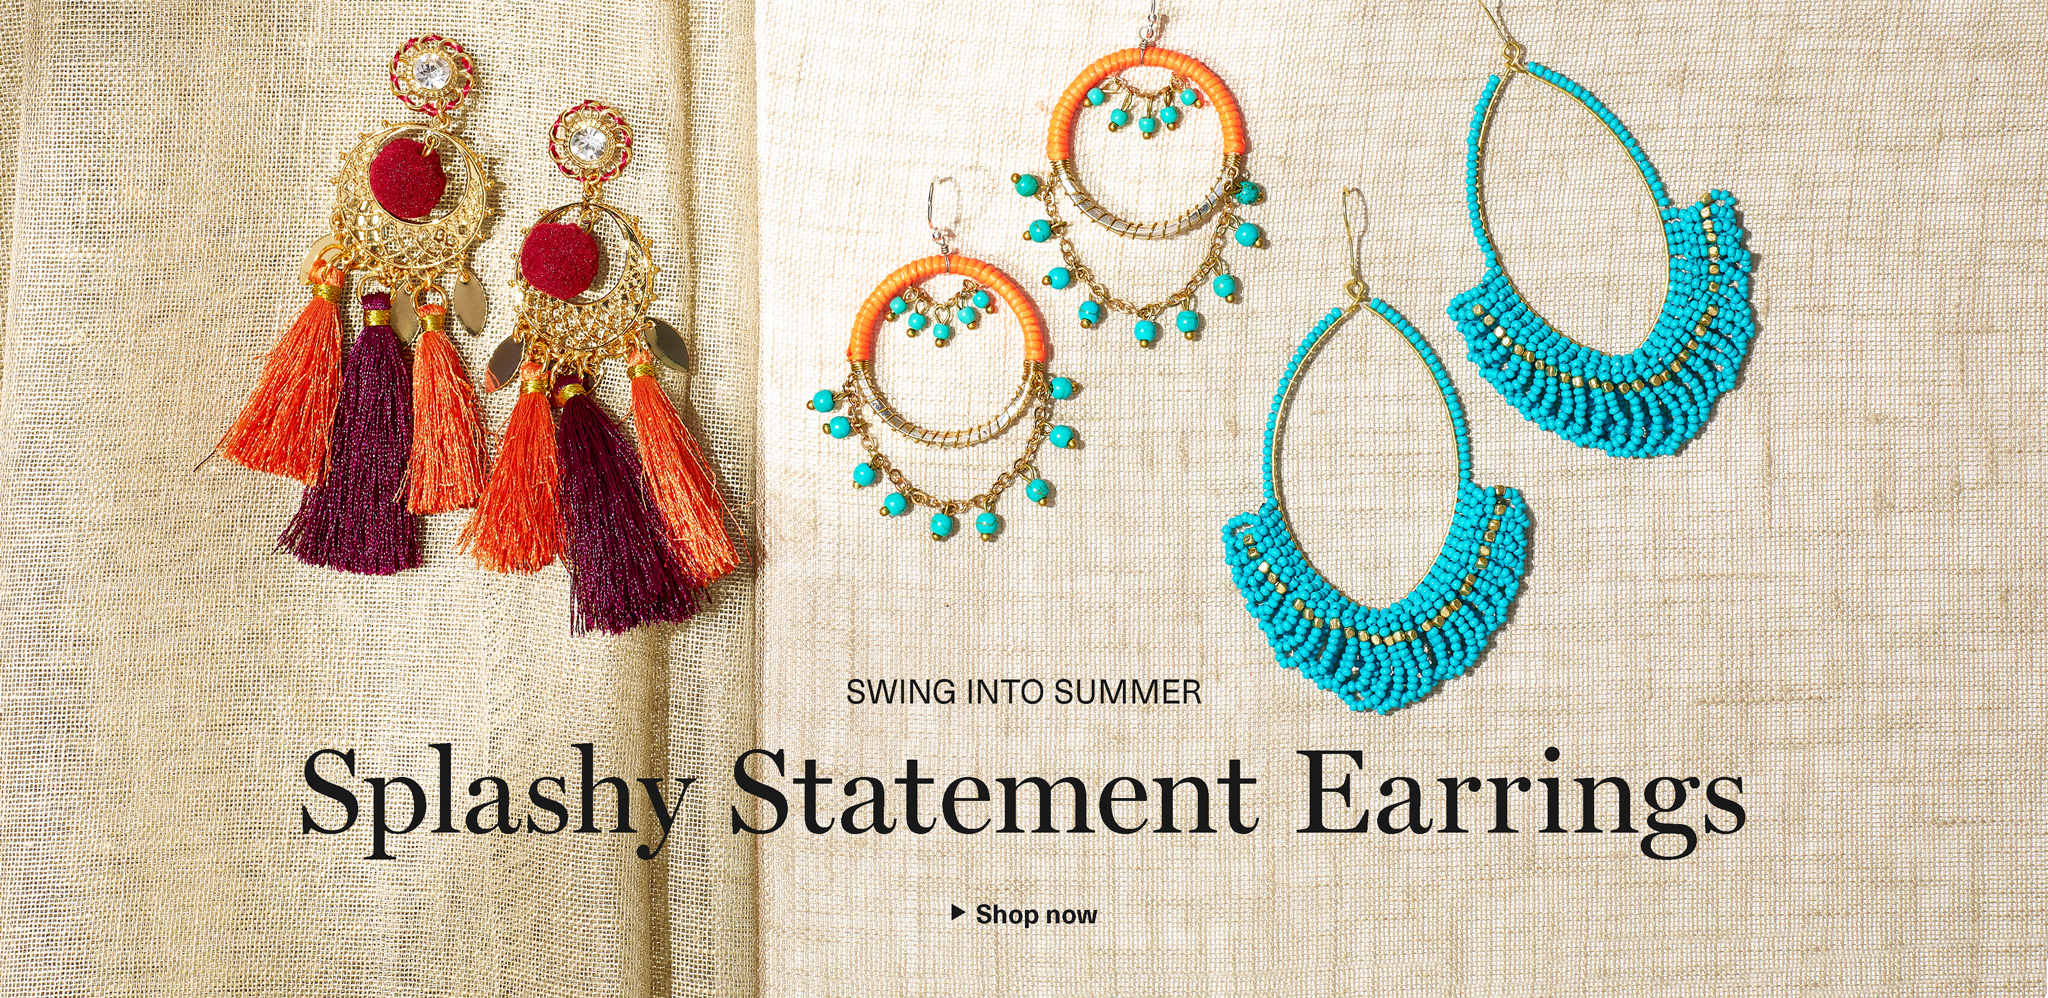 Splashy Statement Earrings